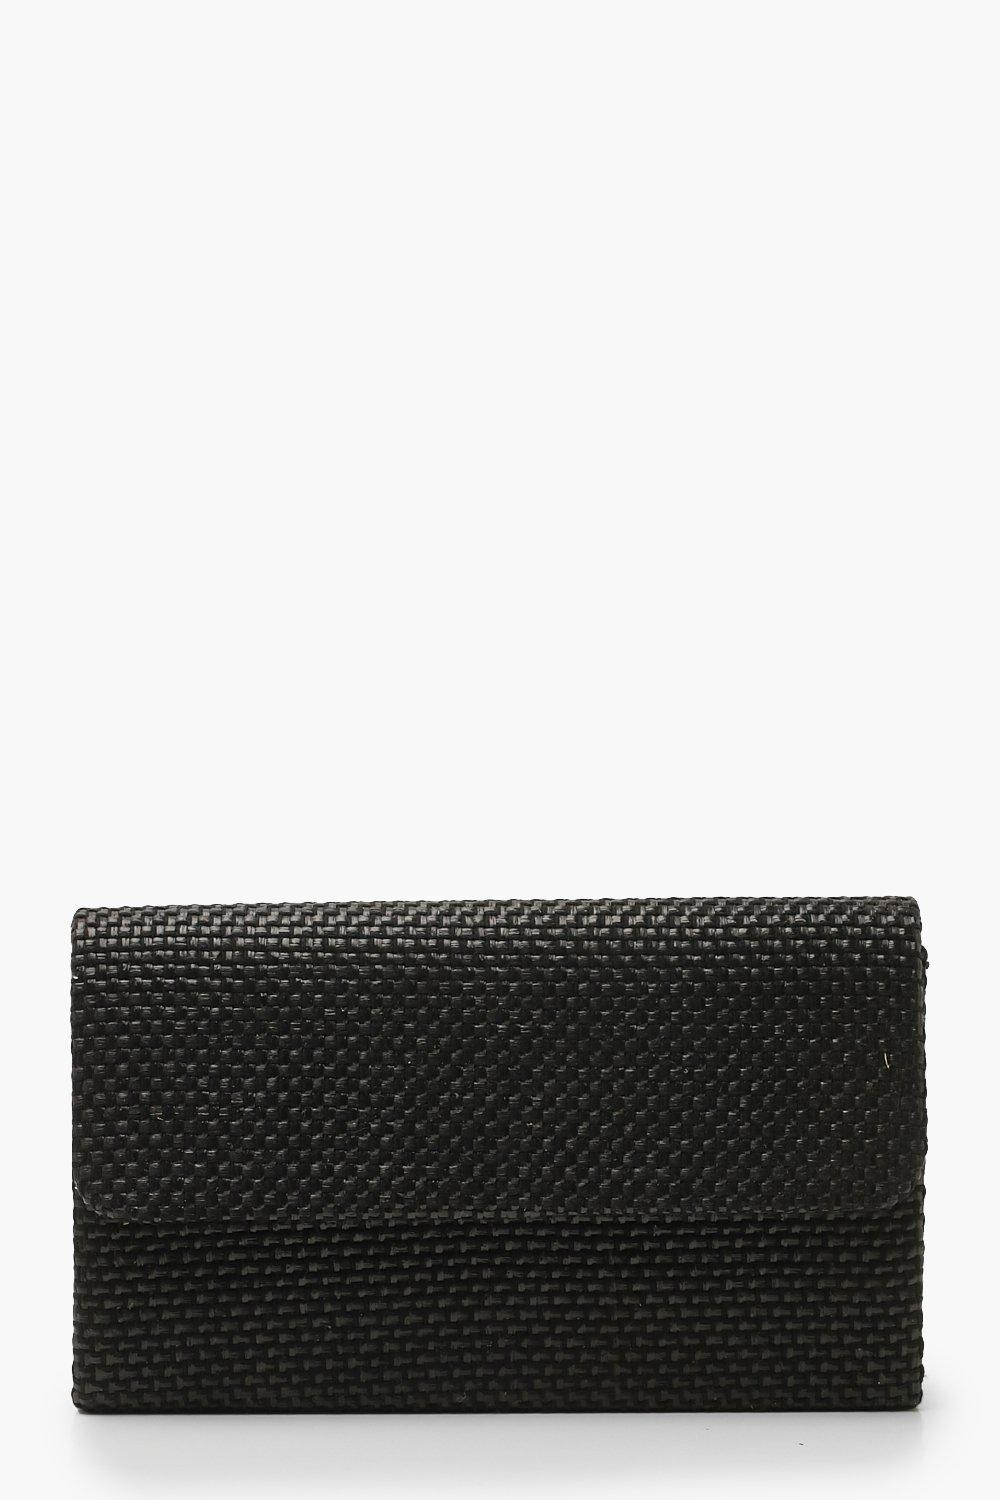 Raffia Straw Structured Clutch & Chain